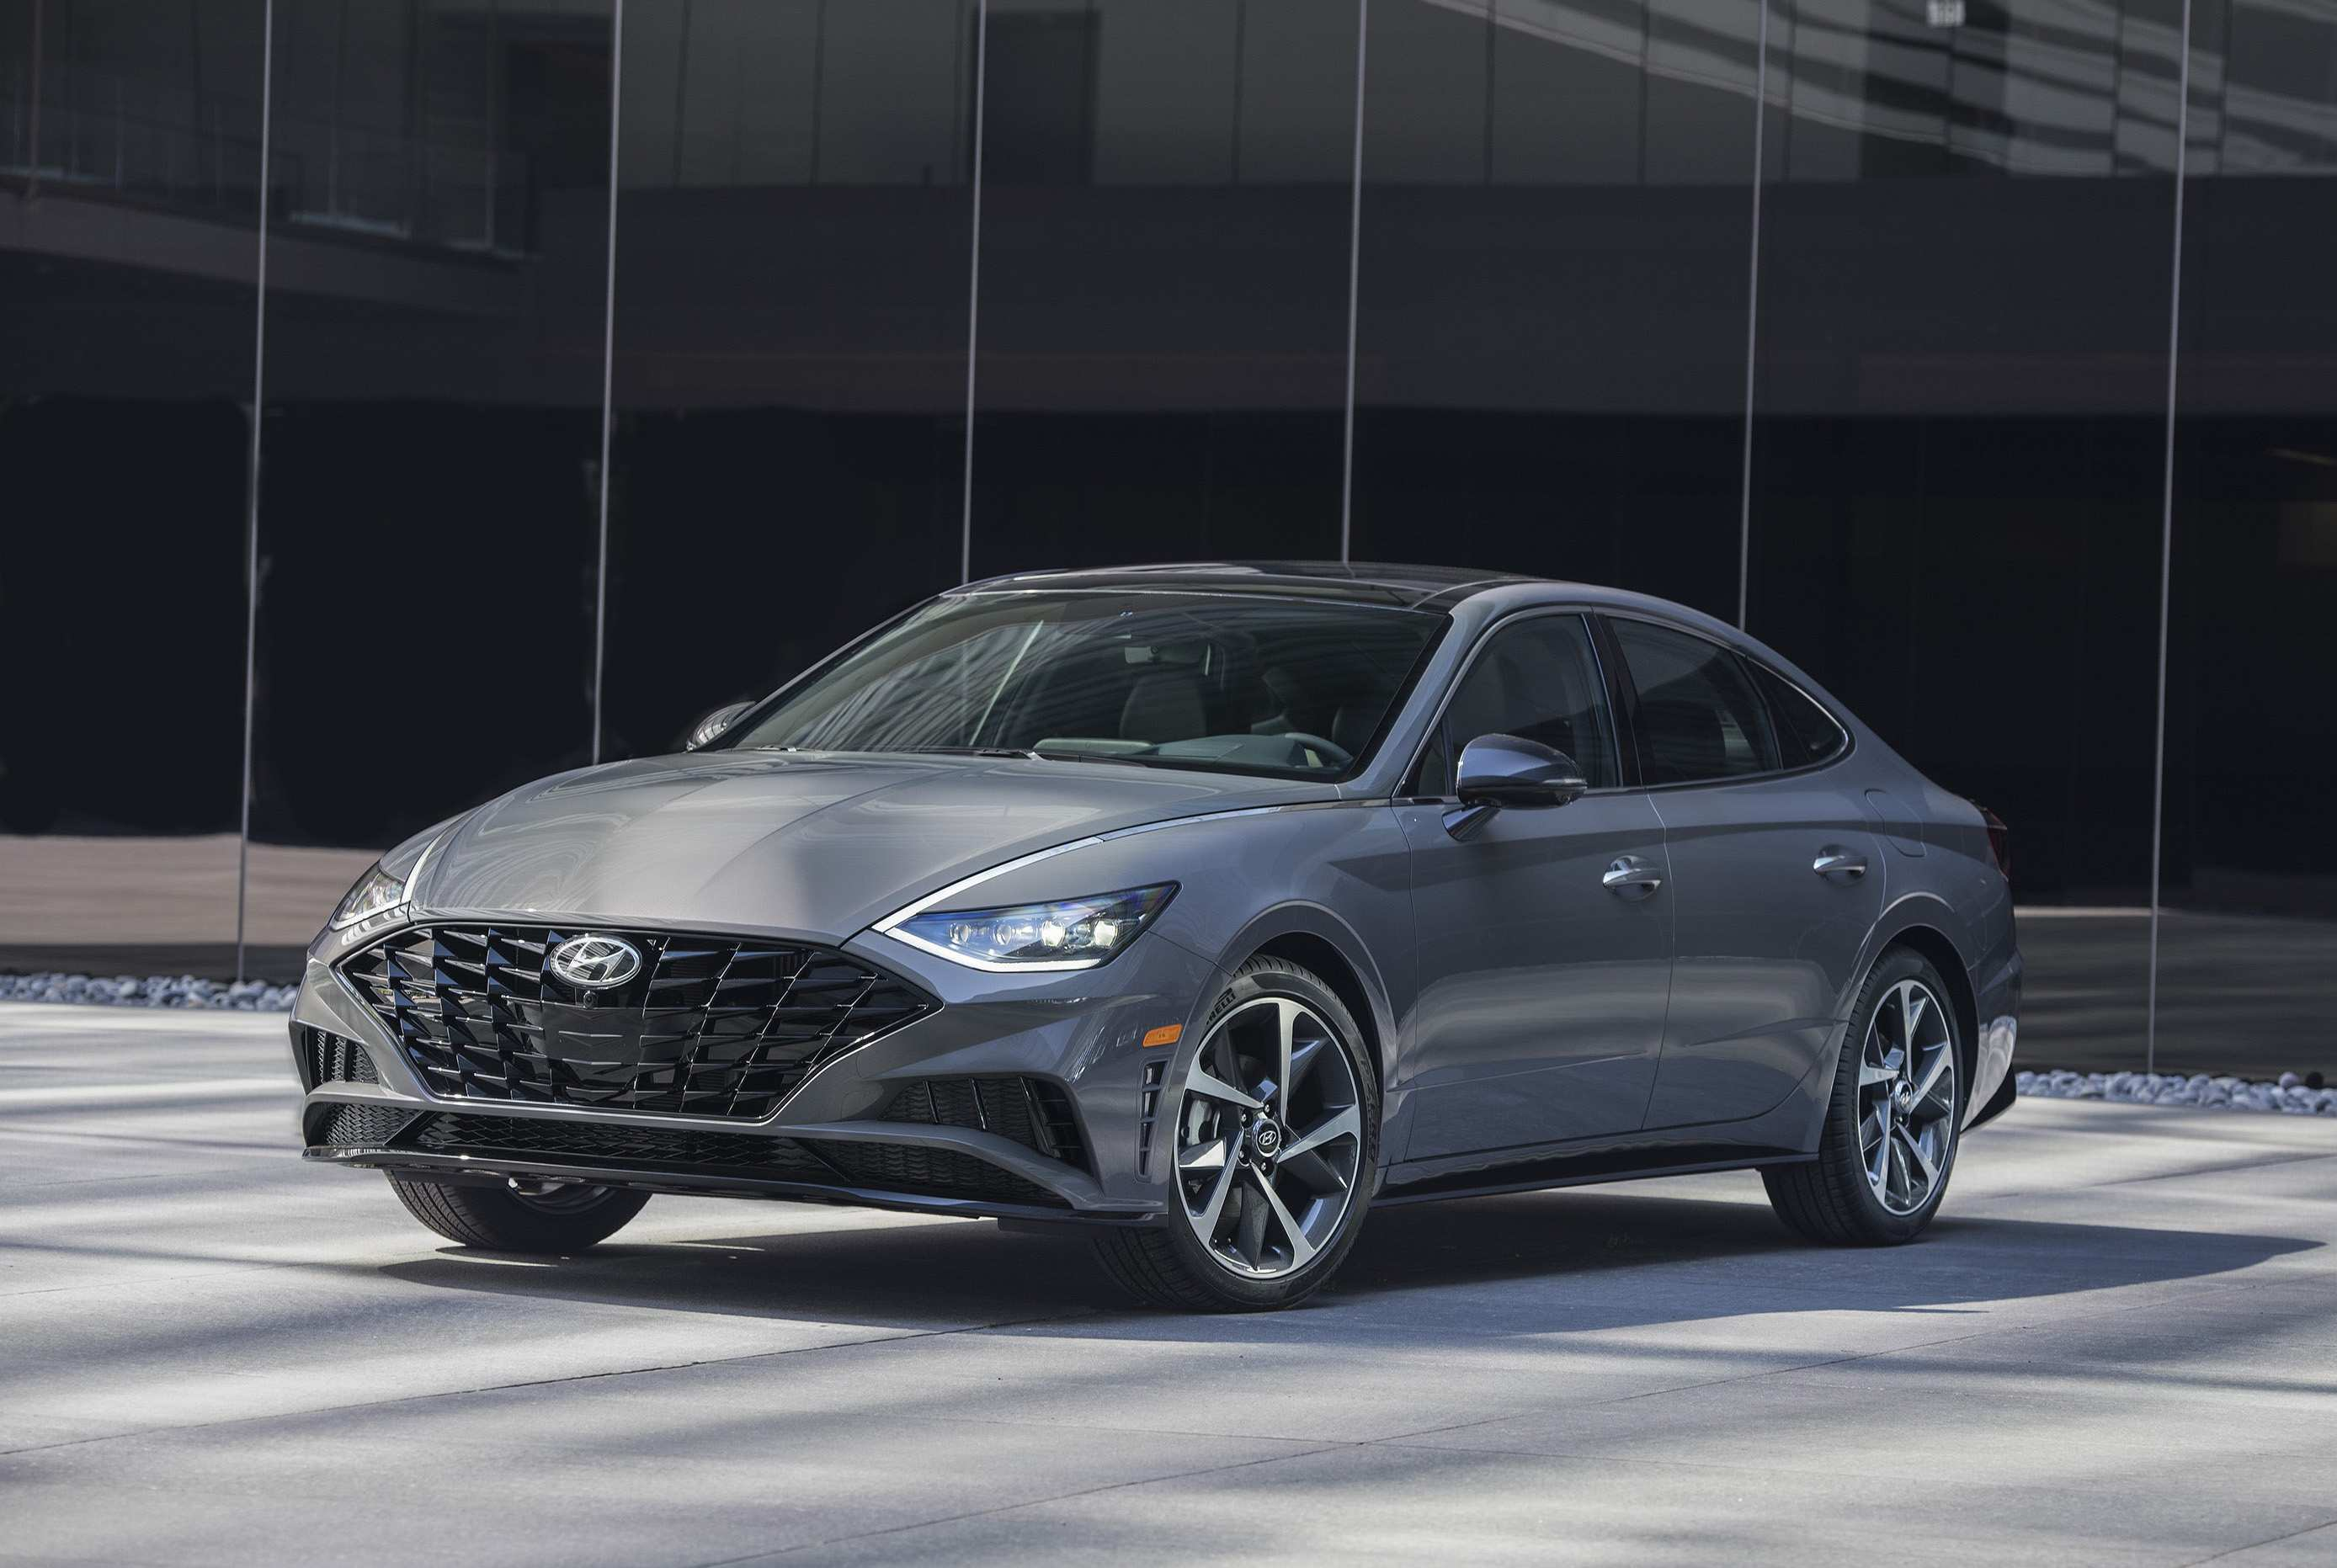 22 The Best Hyundai Sonata 2020 Exterior